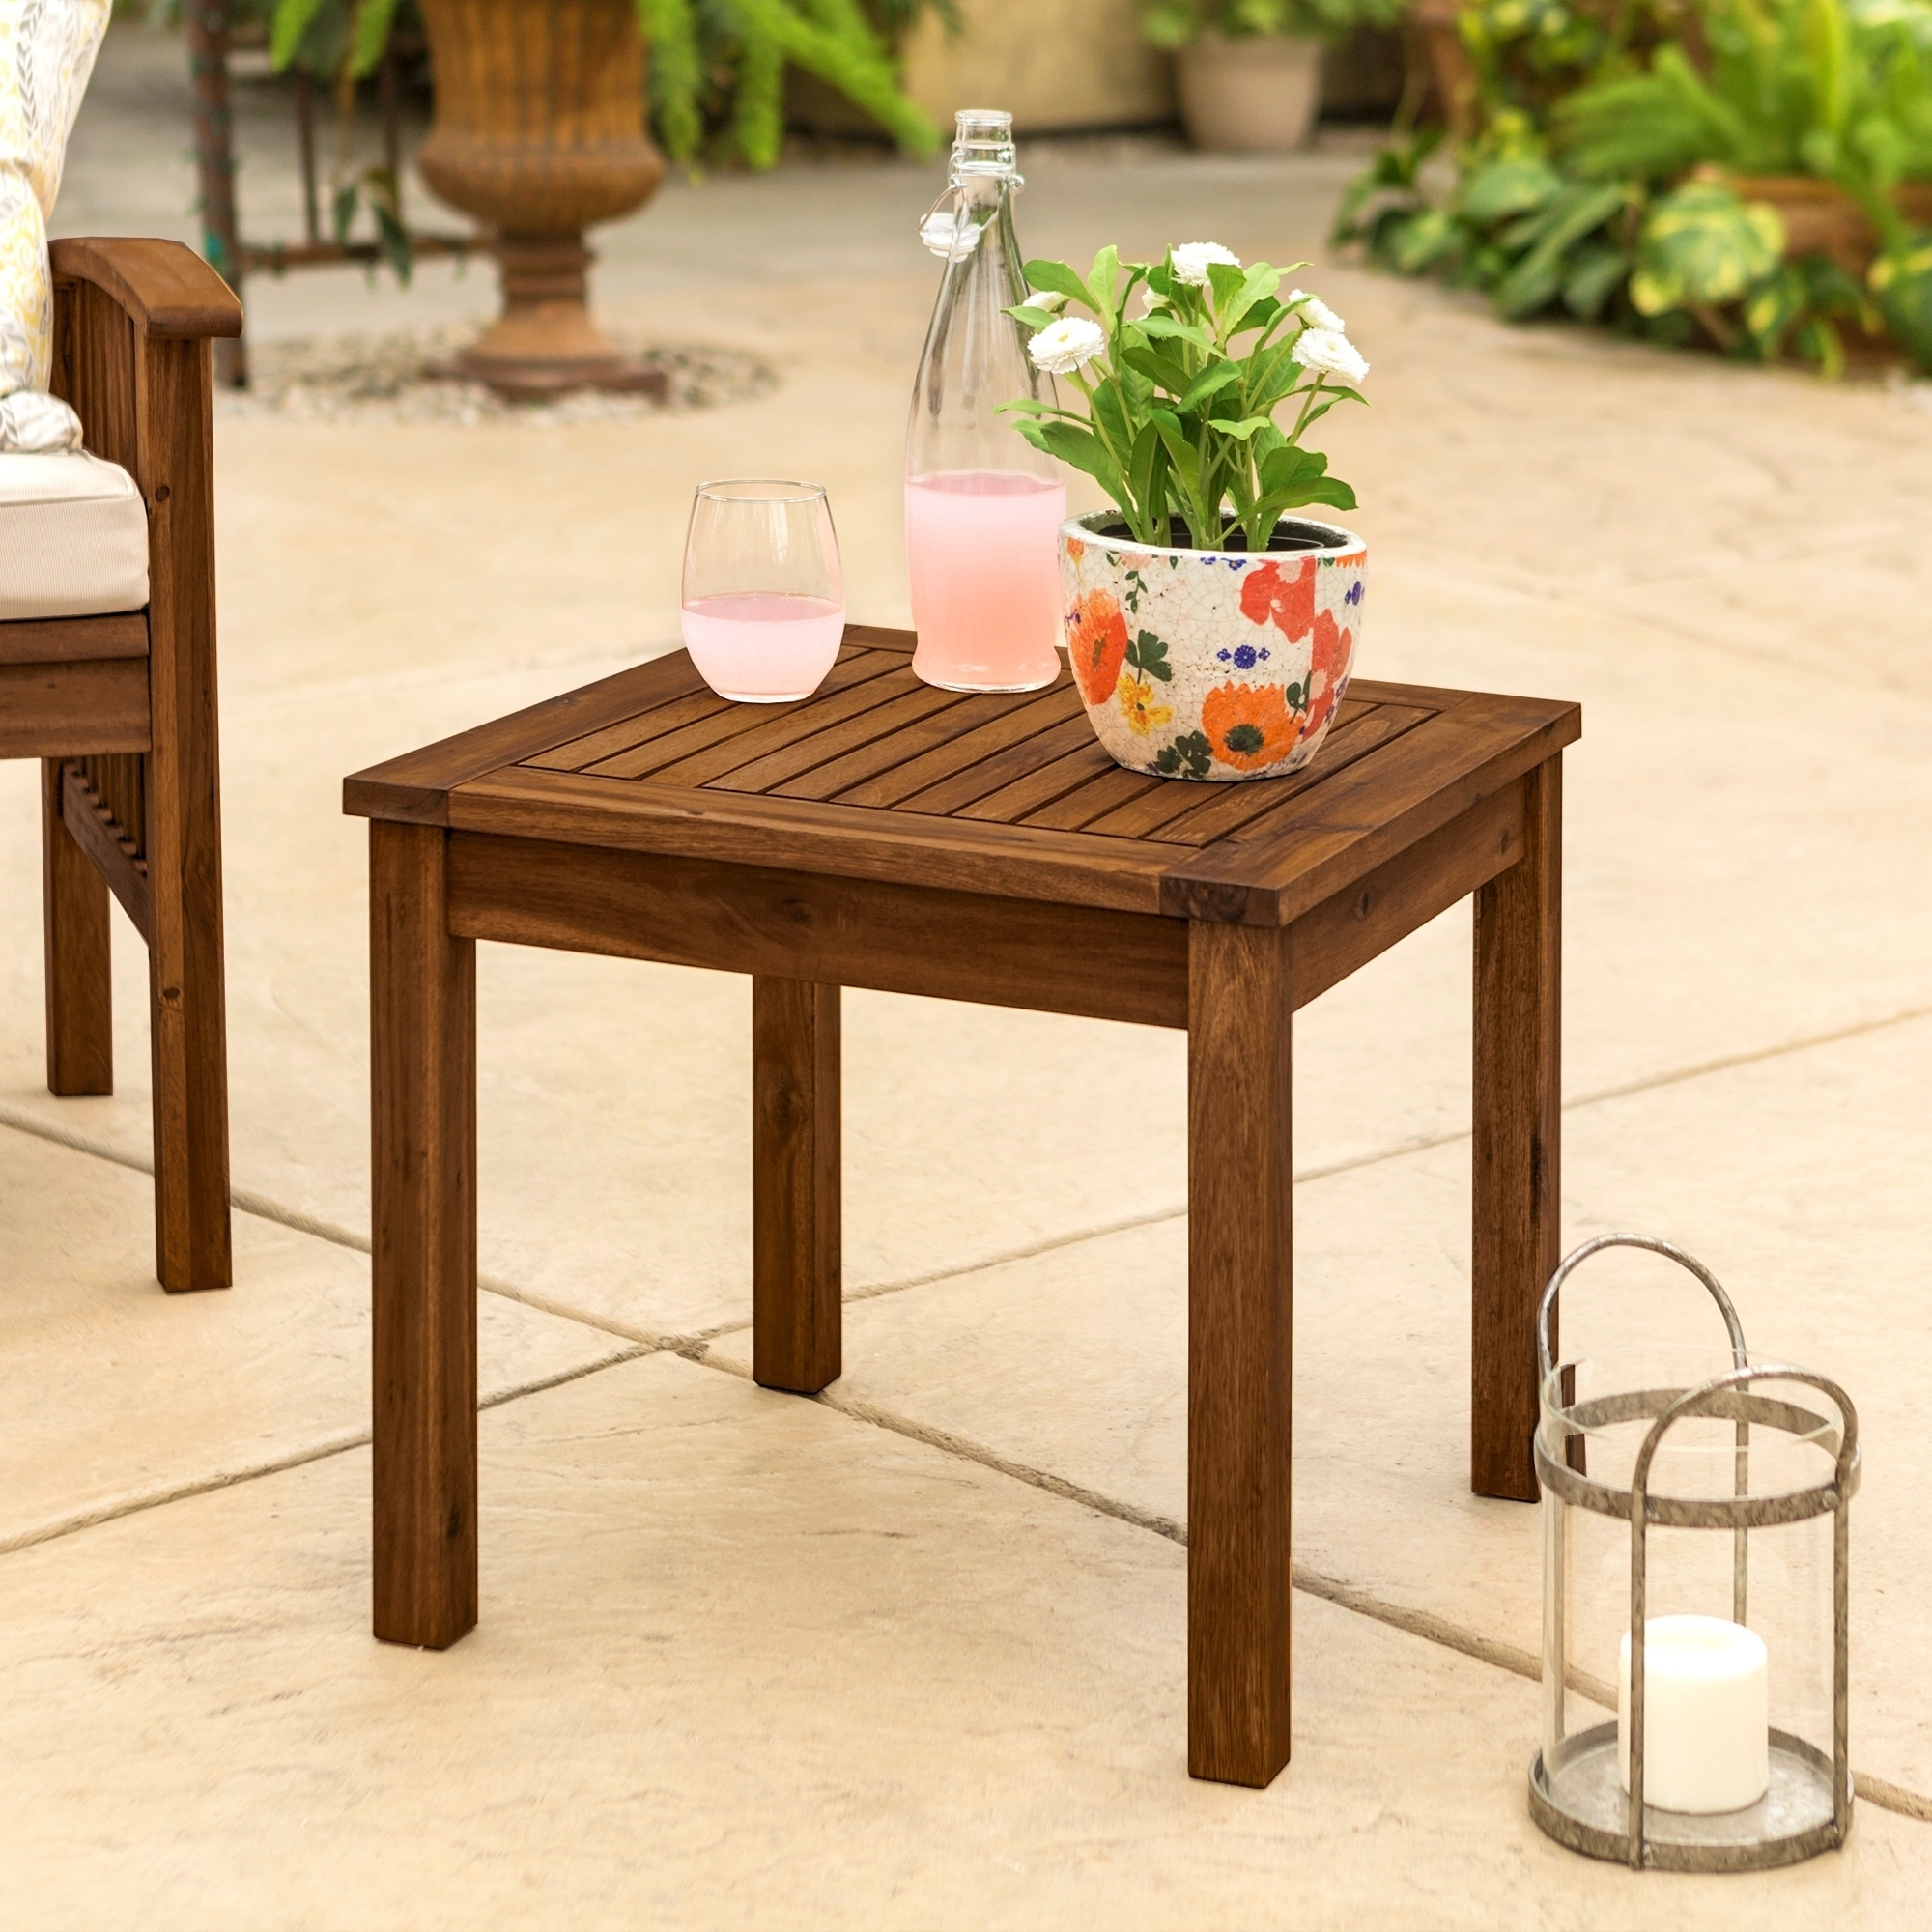 acacia outdoor side table free shipping orange today electric wall clock plastic furniture patio sets clearance console teak wood easter tablecloths small living room end tables